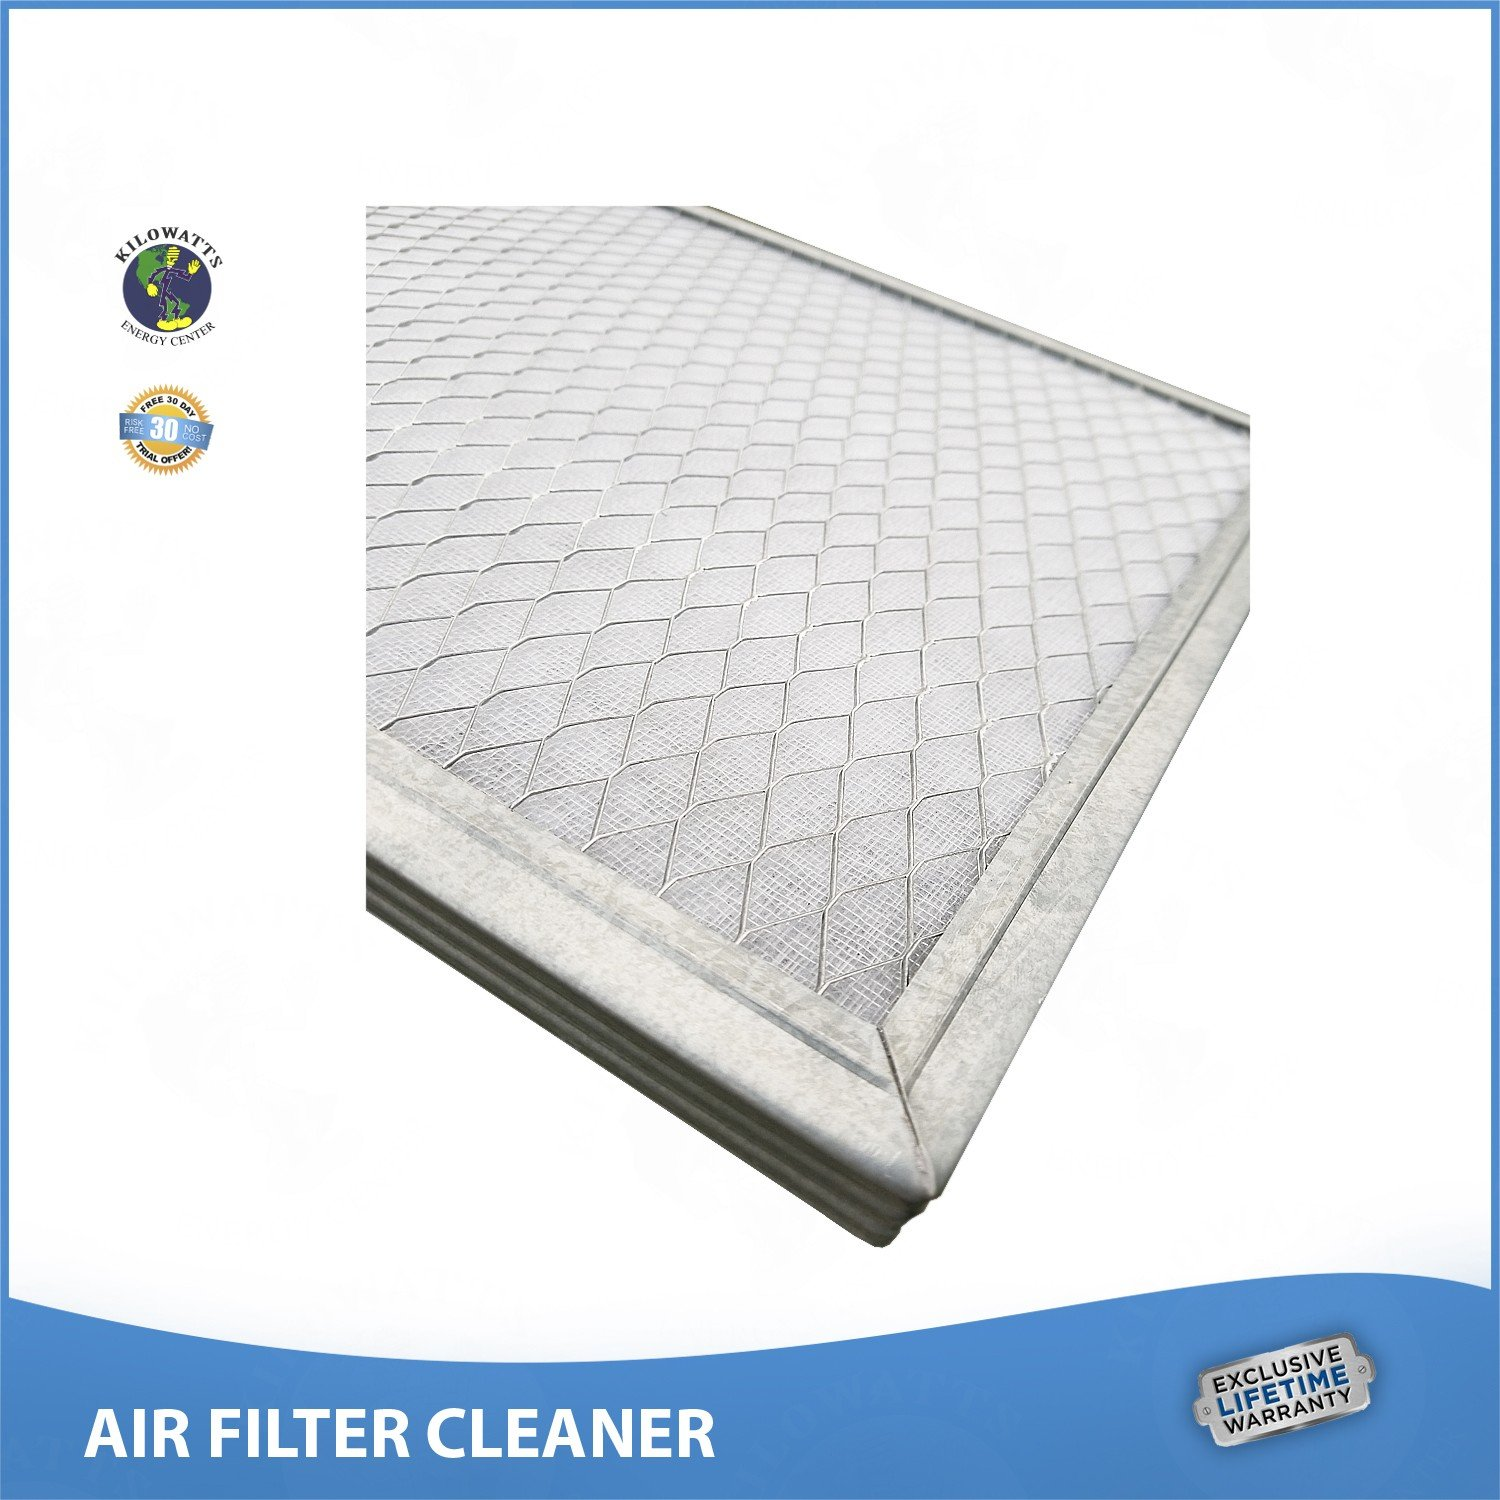 14x25x1 Lifetime Air Filter - Electrostatic Washable Permanent A/C Silver Steel Frame 65% more efficiency by Kilowatts Energy Center (Image #4)